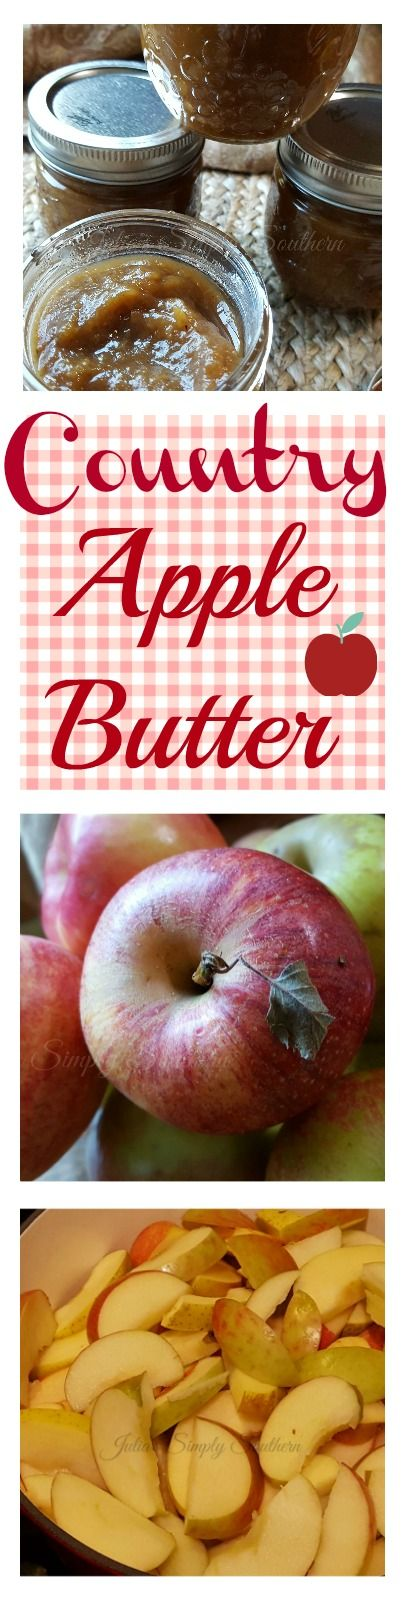 Country Apple Butter, Old Fashioned, Delicious, Tasty, Autumn, Fall, Local, Apple Season, NC, Southern Cooking, Canning, Easy, Best, Classic, How to, Quick, Stove Top, Recipe, unpeeled